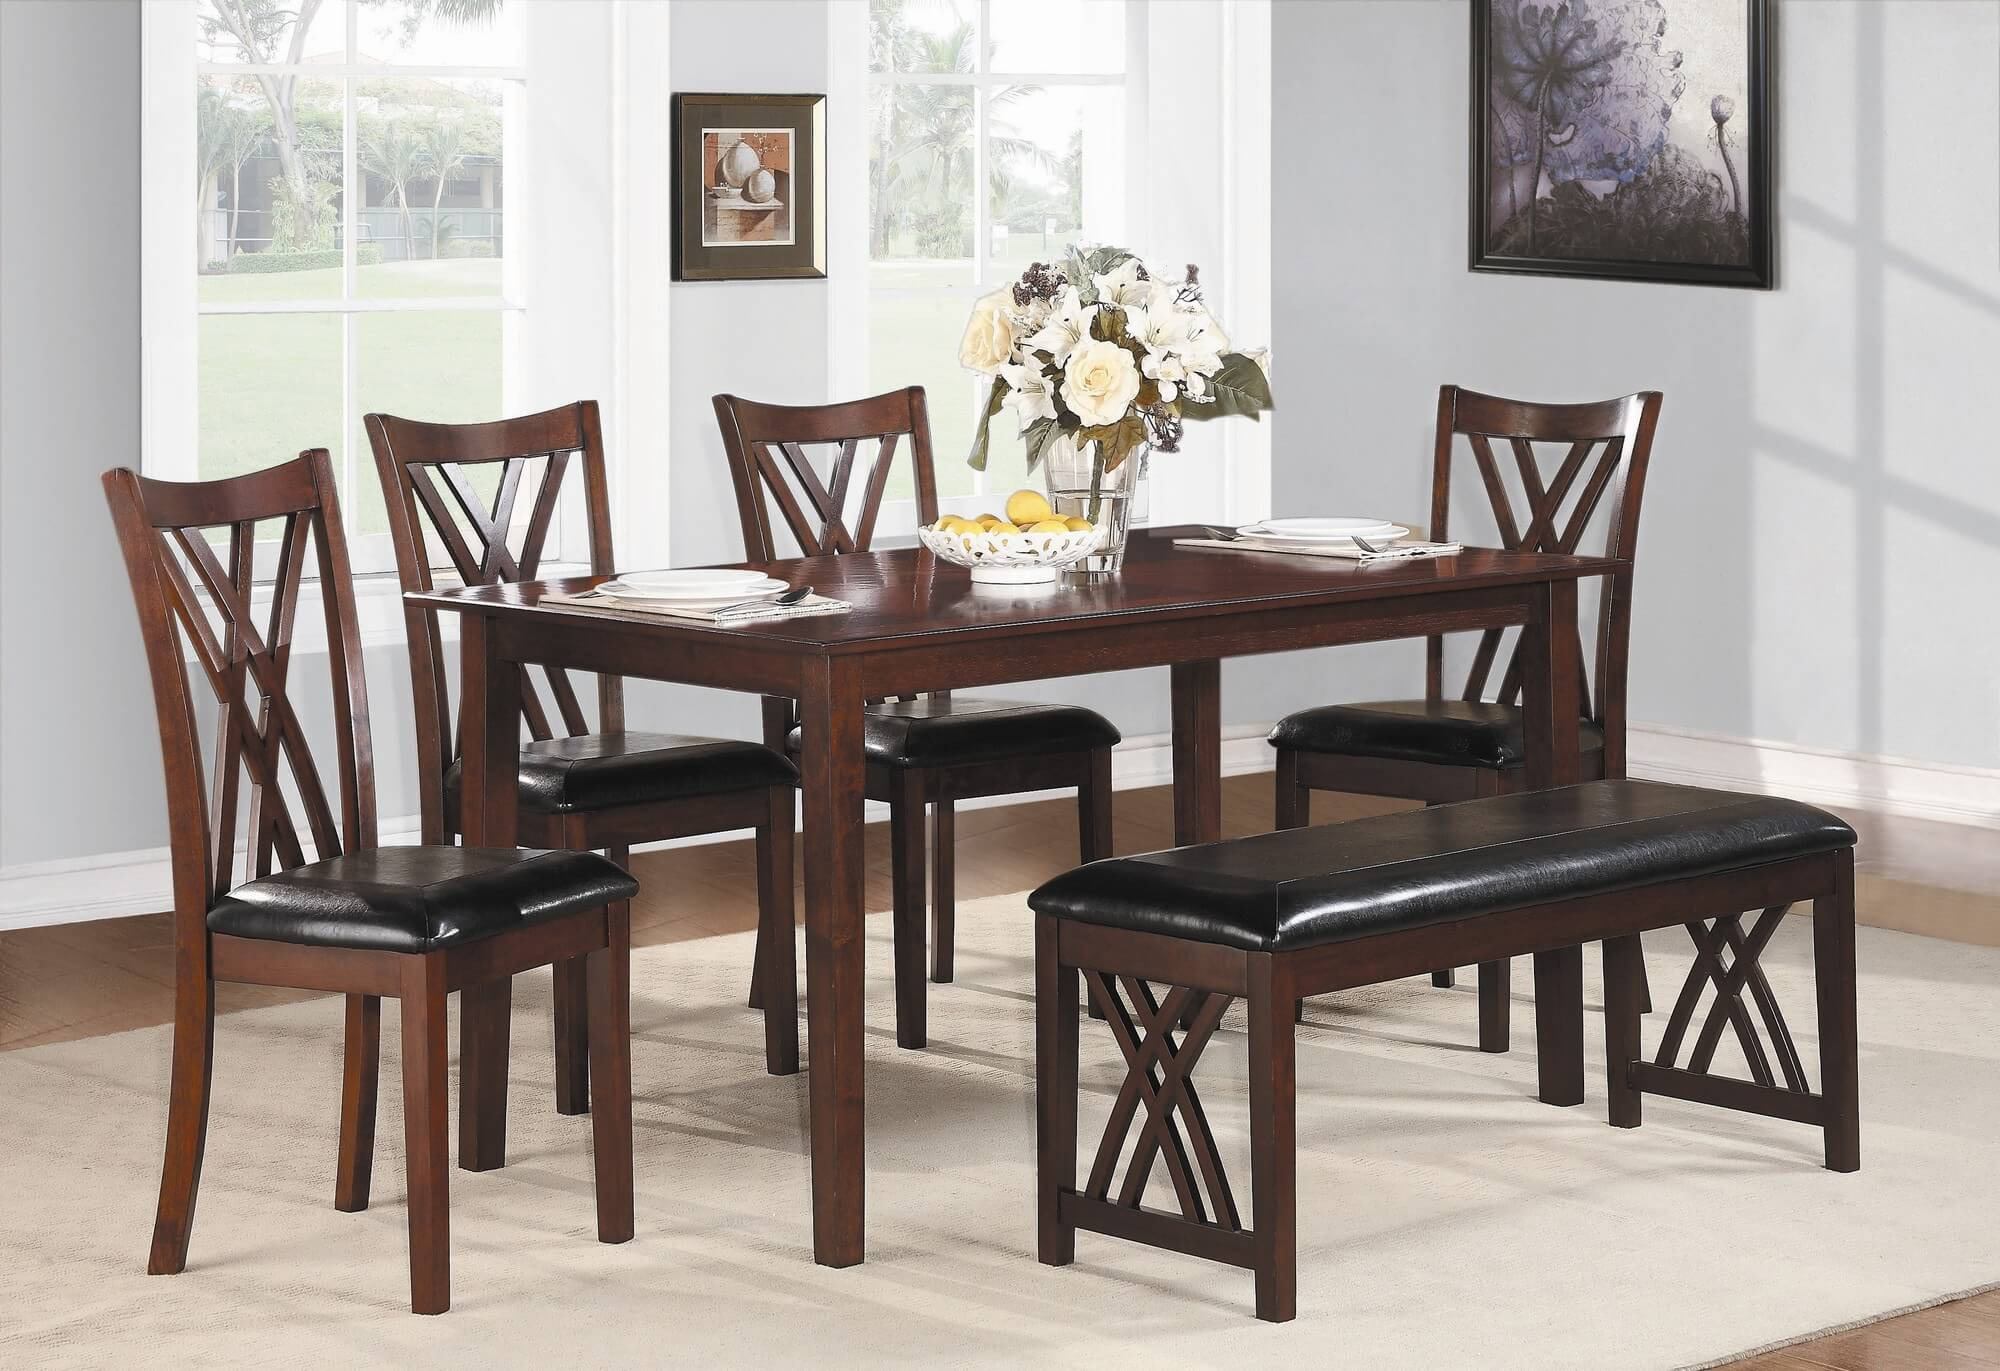 dining room sets bench seating bench for kitchen table Six piece dining set with bench with a cherry finish and upholstered chairs and bench